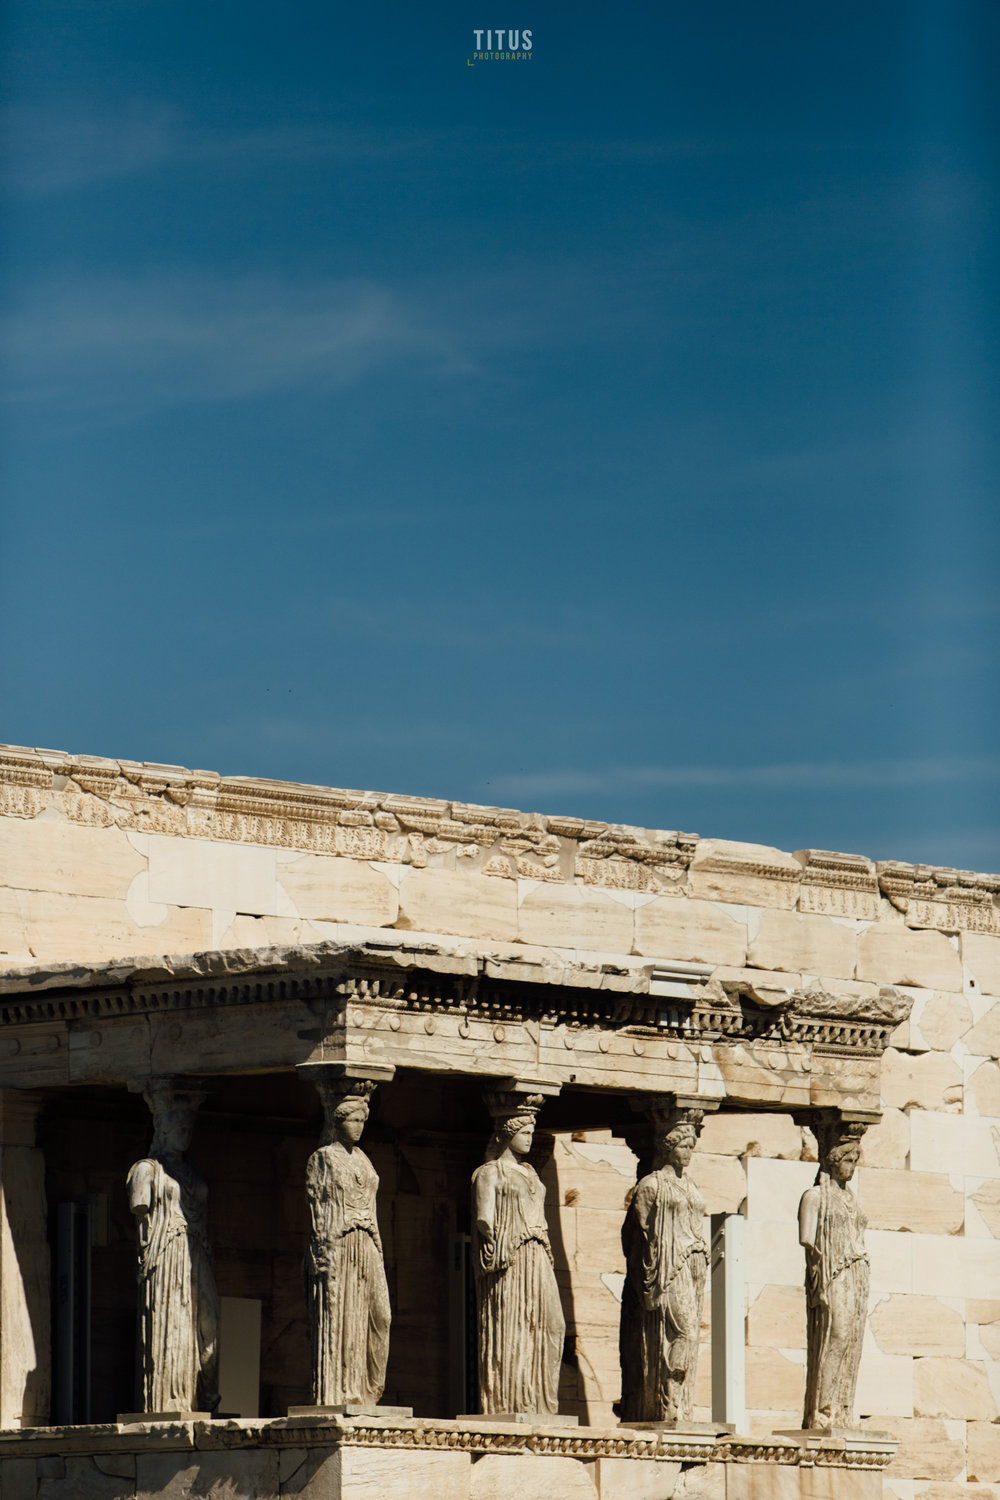 044-mons-athens-blog images.JPG